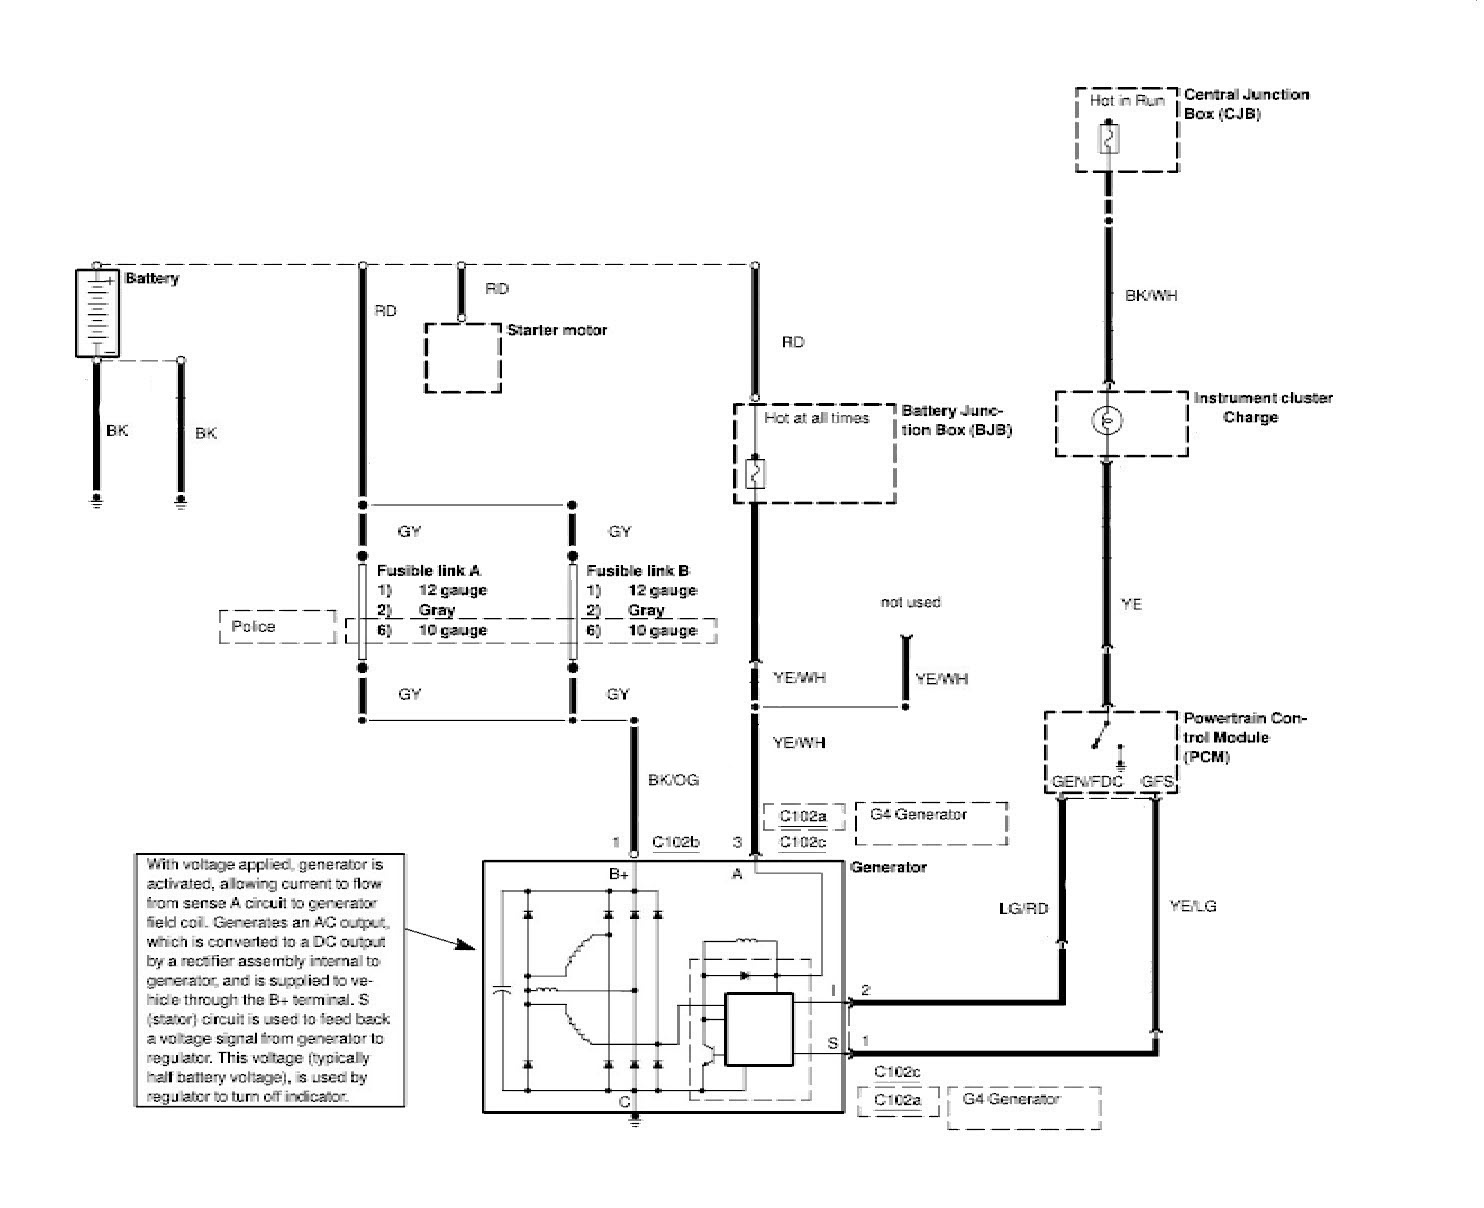 Cat C7 Troubleshooting Wiring Diagram Repair 3116 Fuel Pump C On